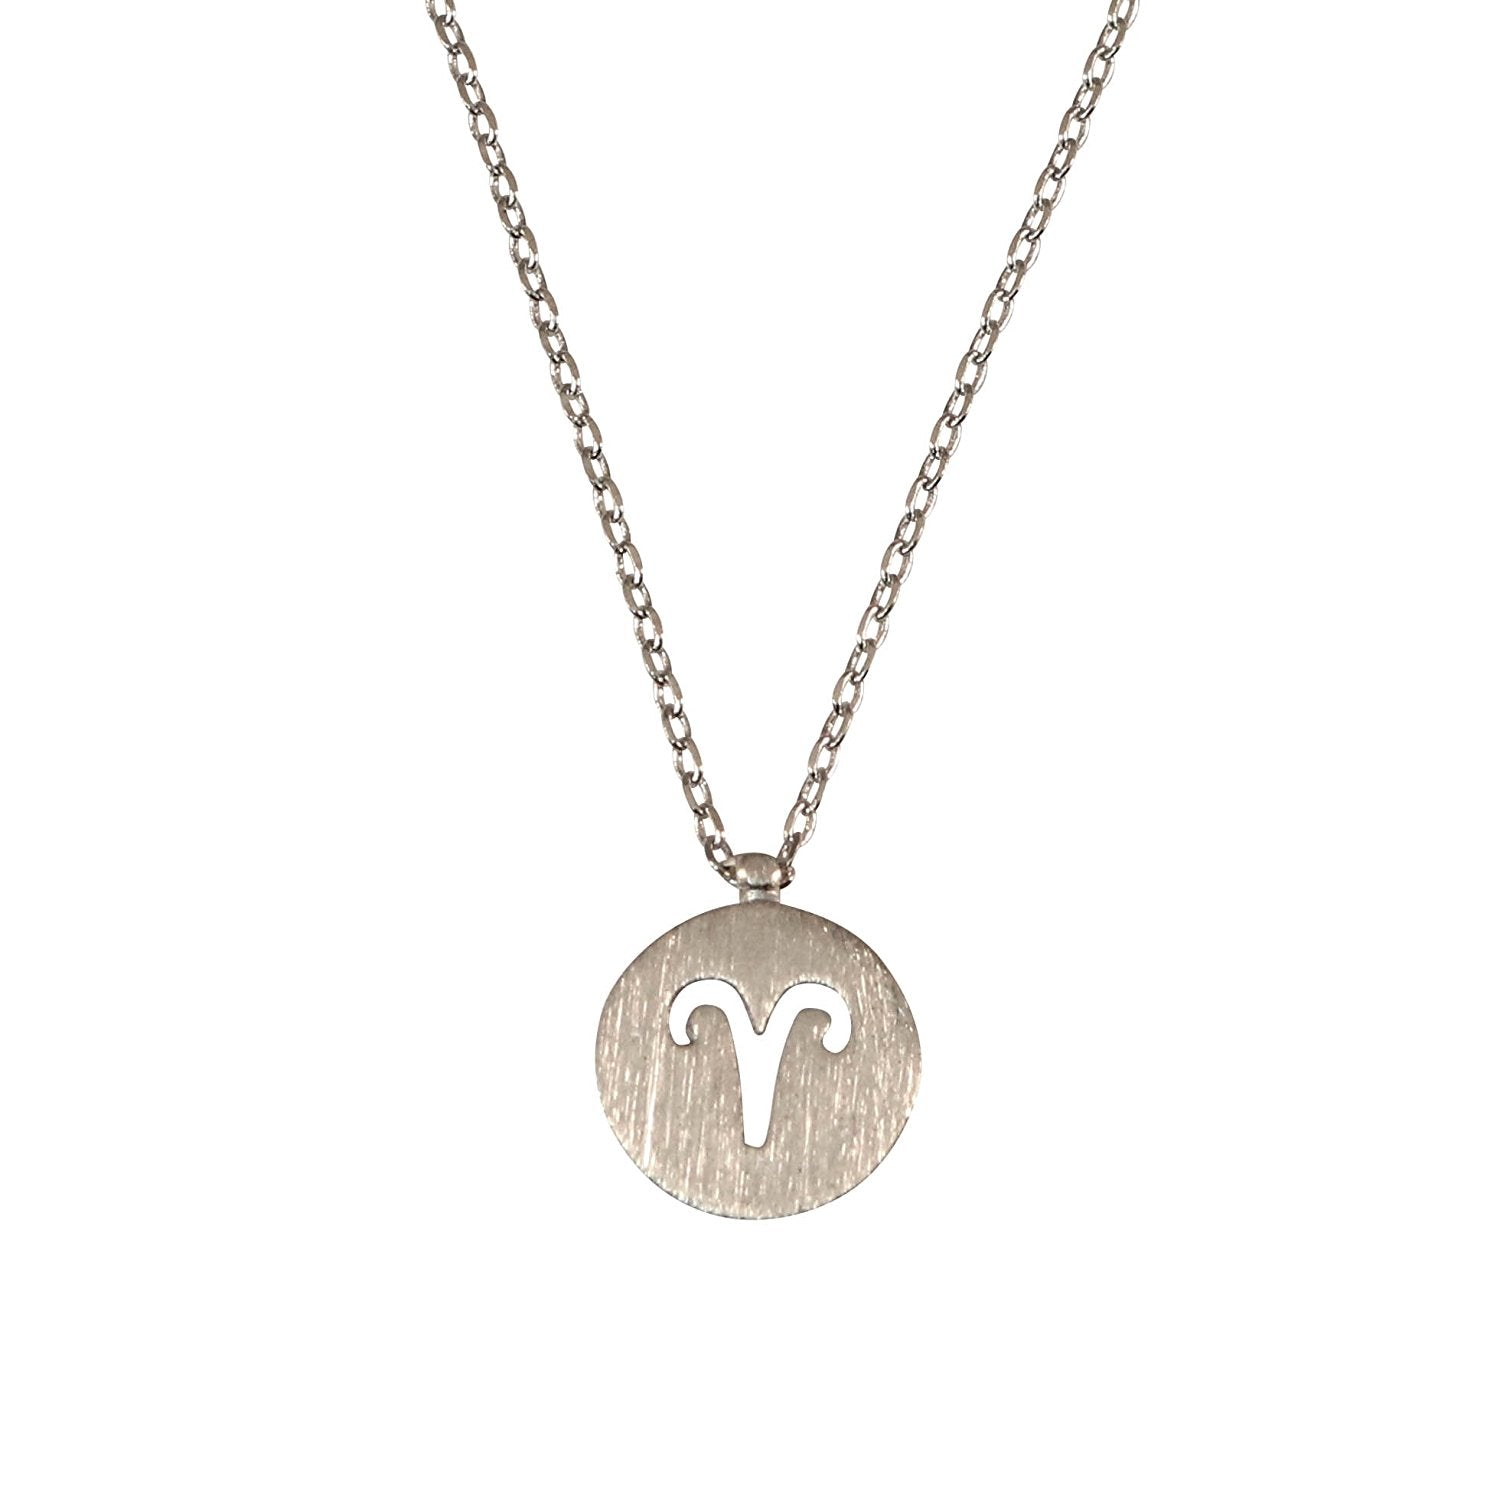 aquarius baublebar zodiac necklace pendant